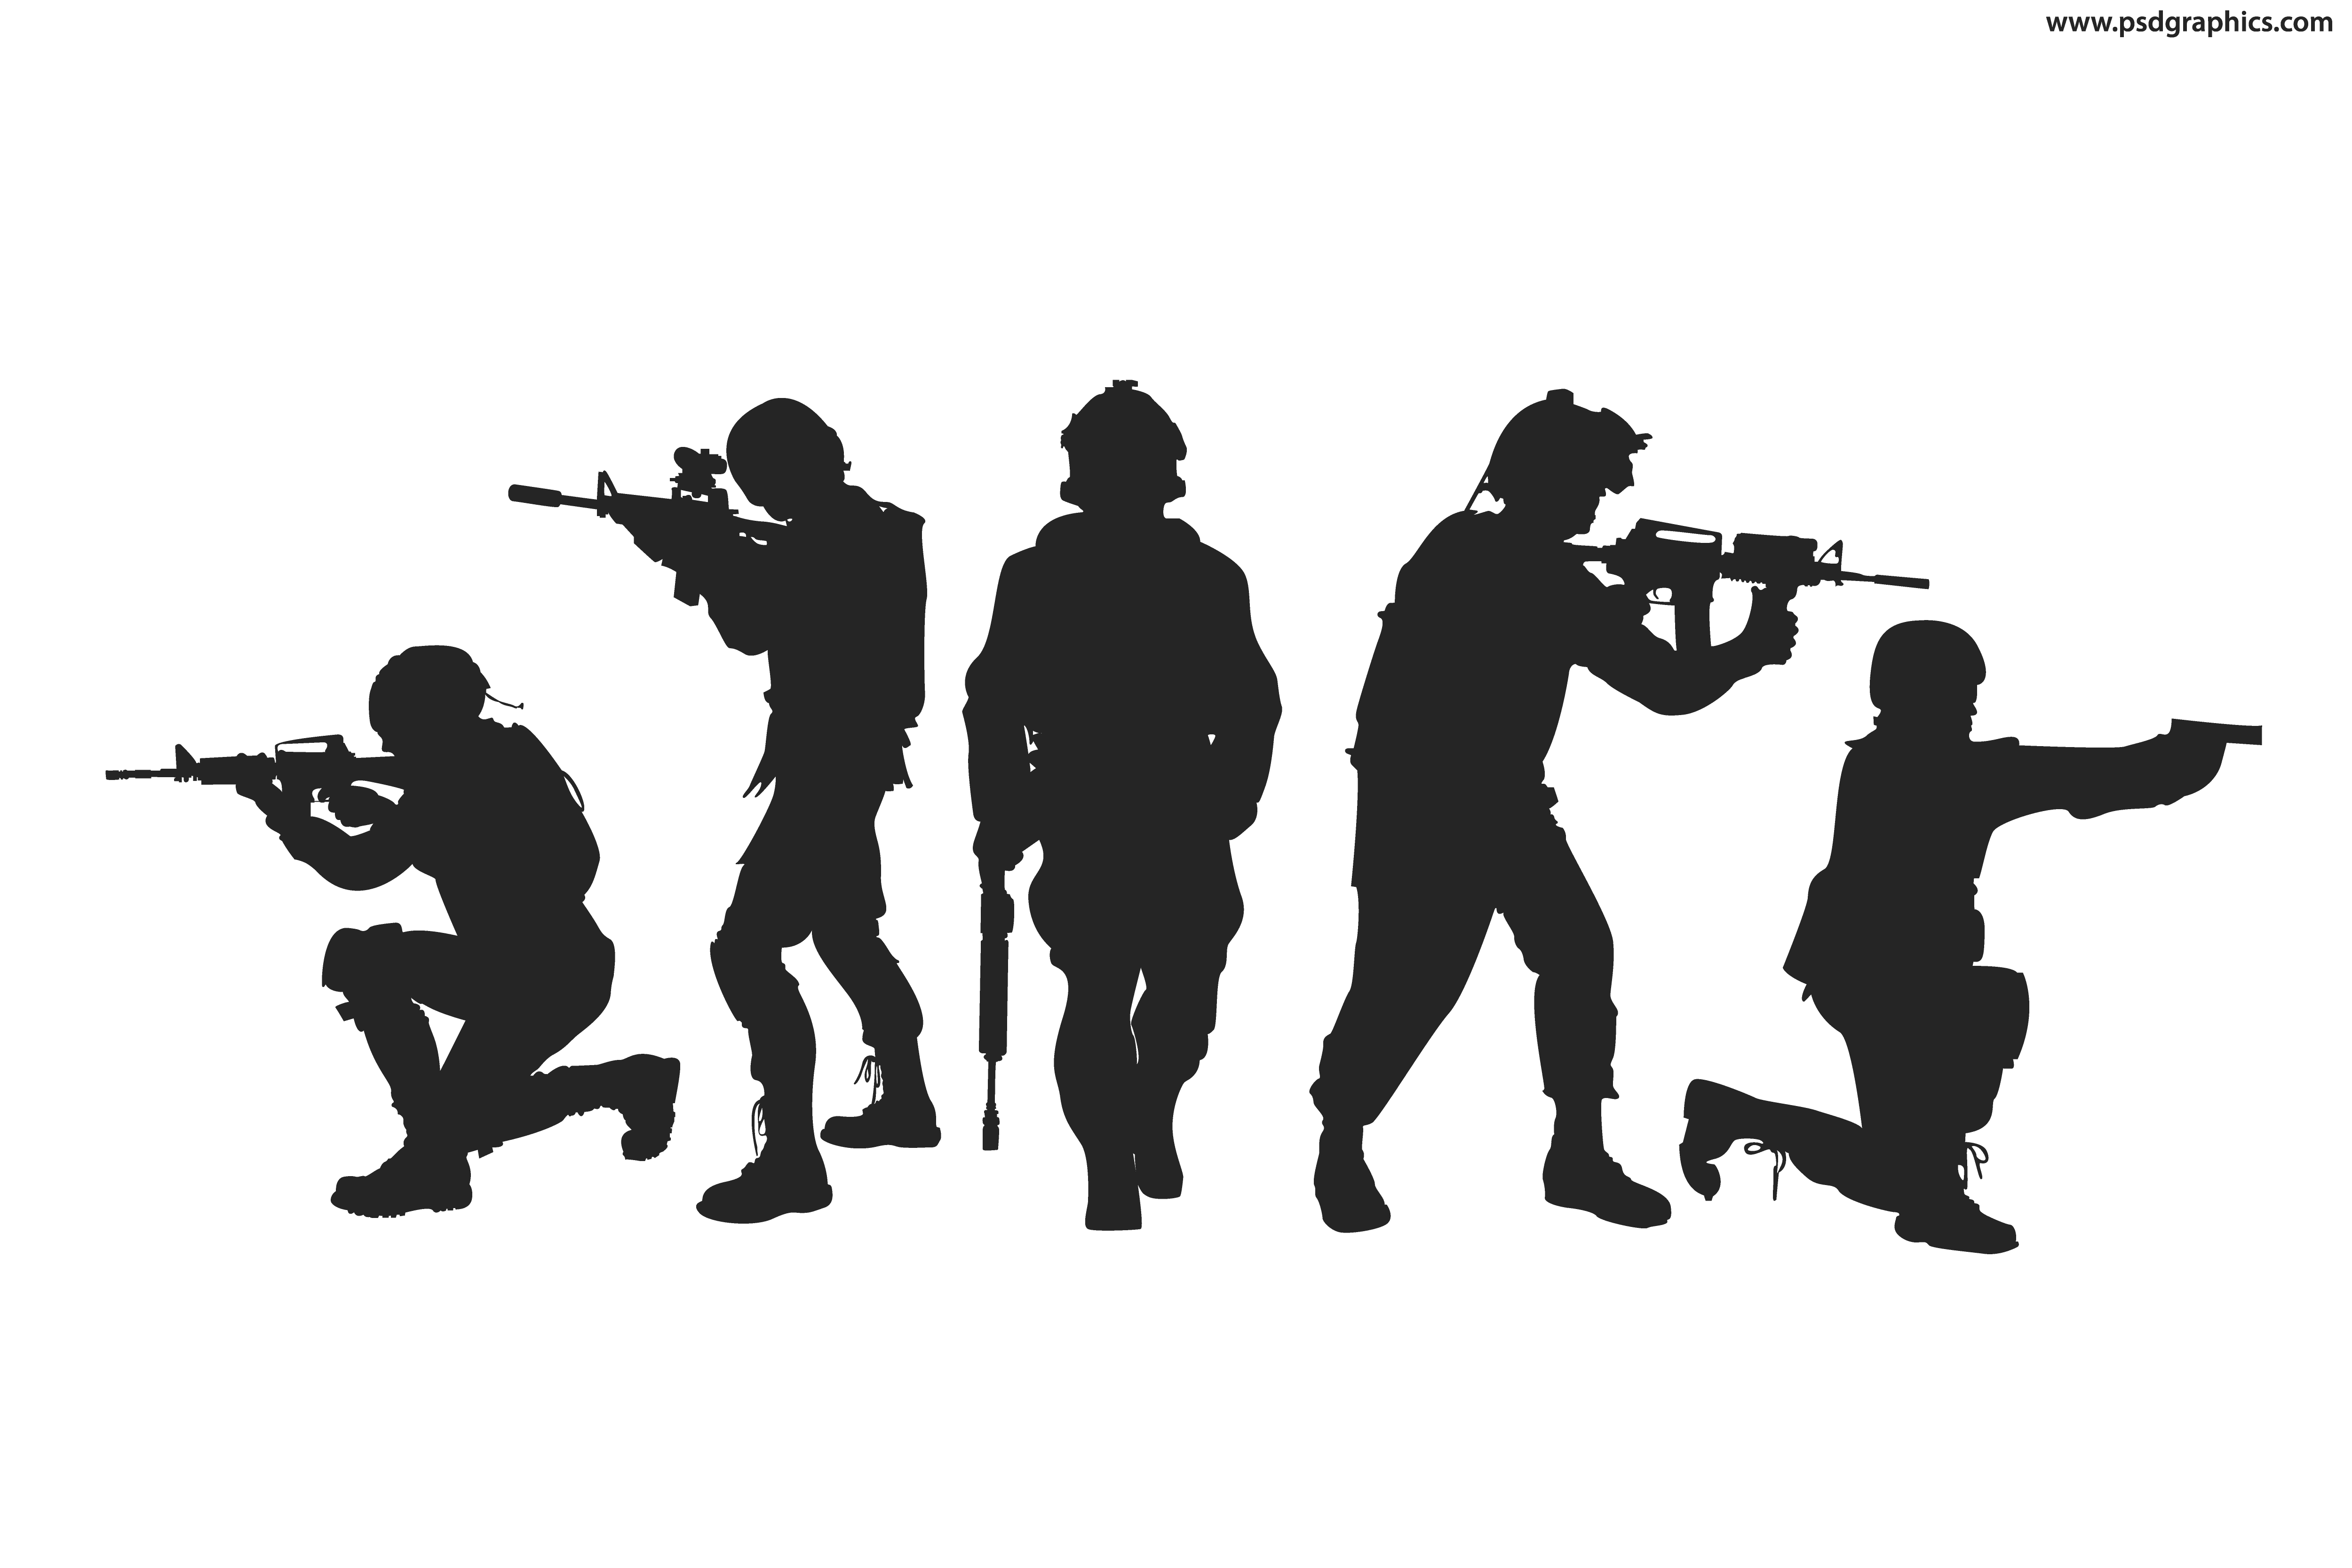 soldier silhouette soldiers silhouettes vector psdgraphics silhouette soldier